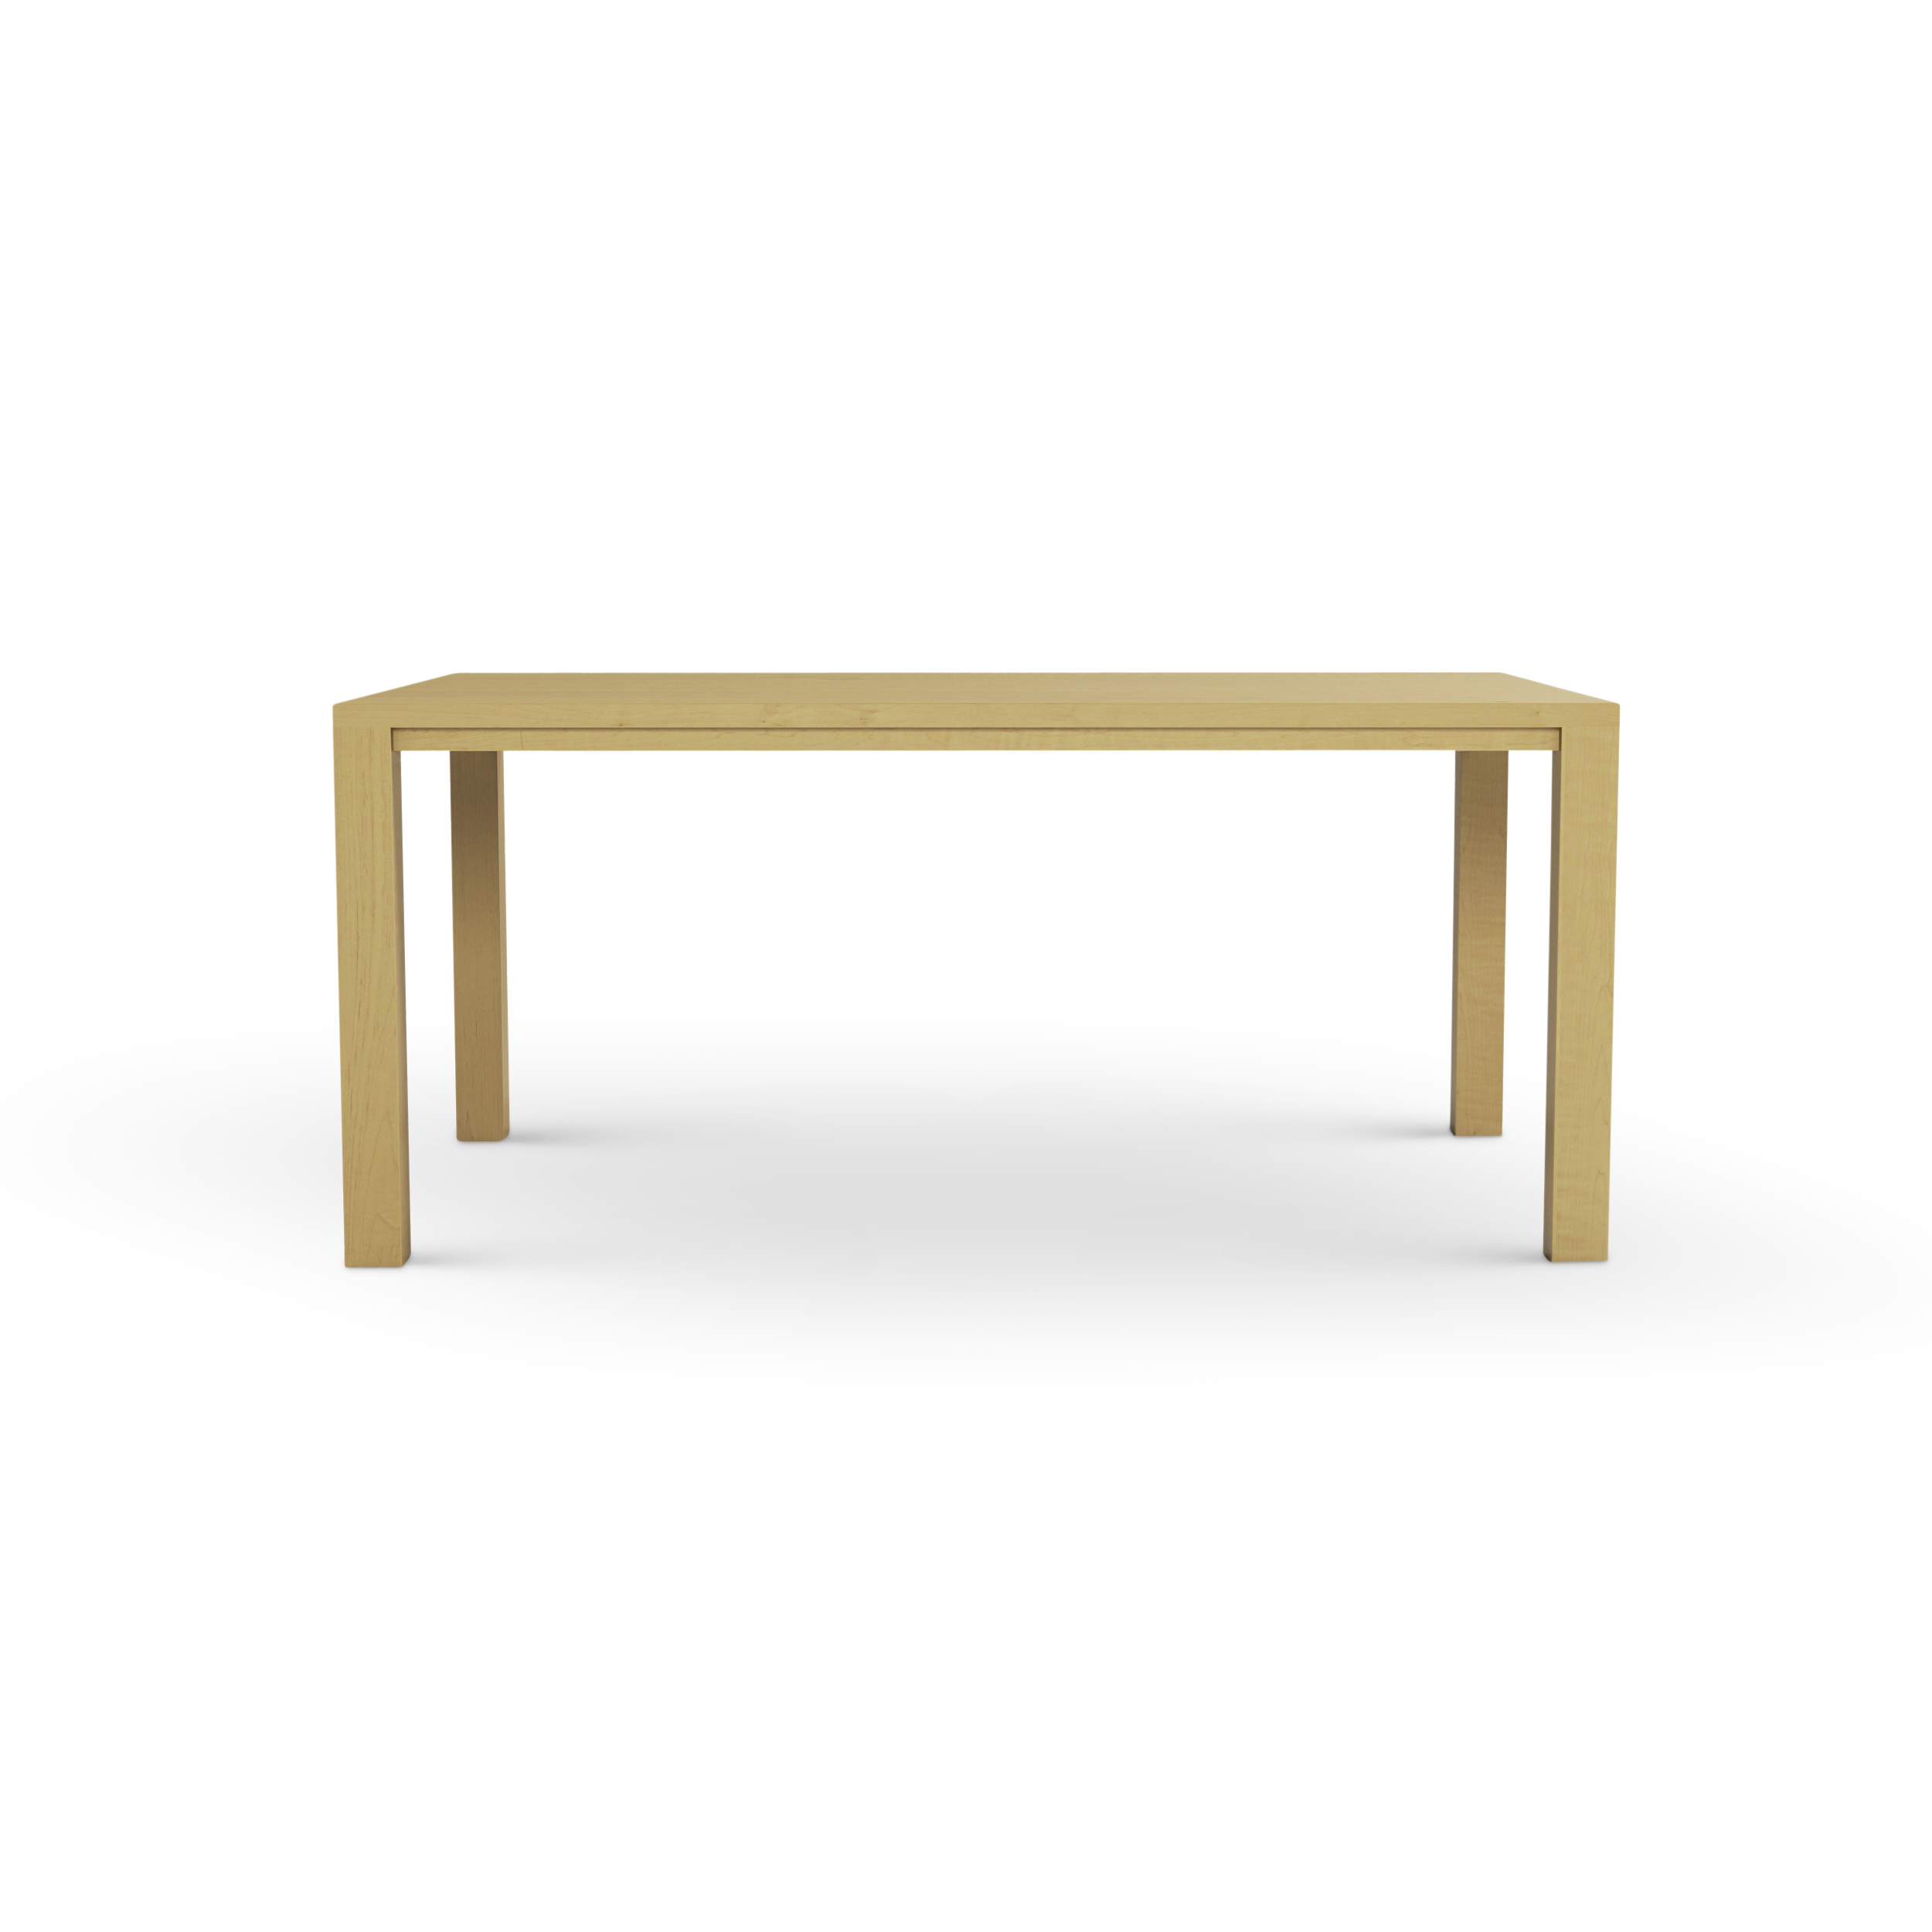 Series 323 66″ Table